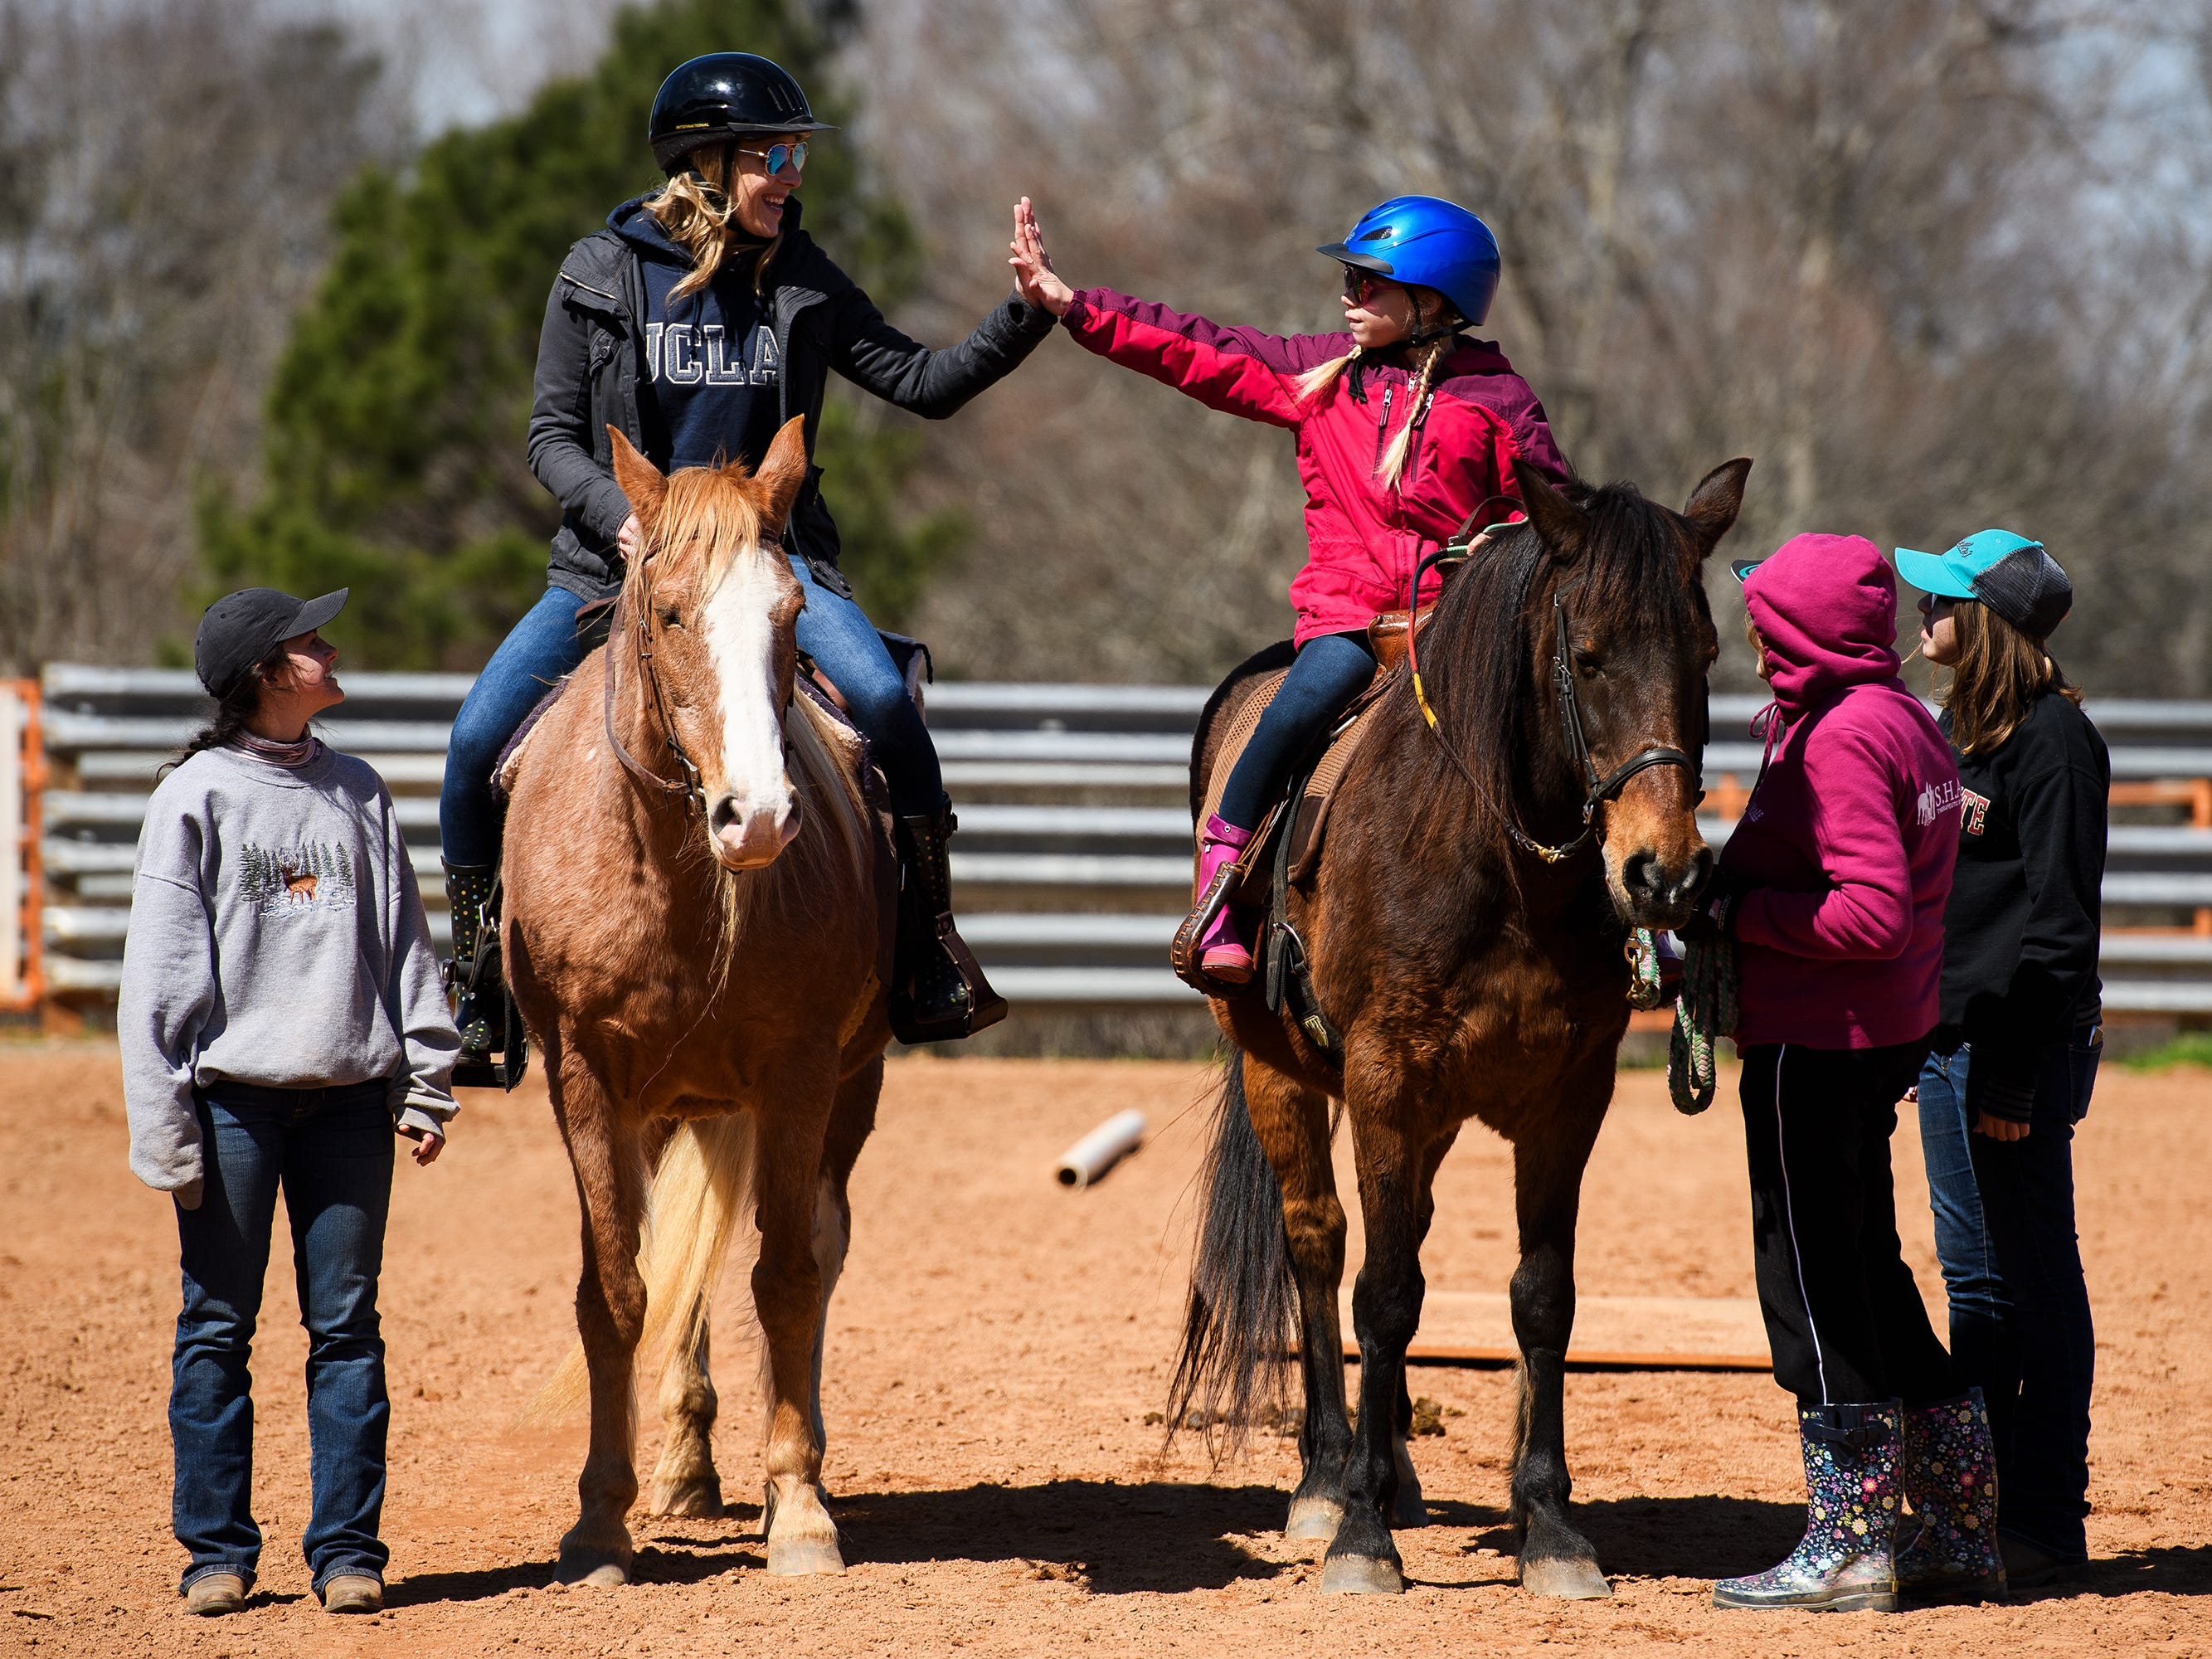 Madison Young, 10, high fives her mother, Katie Young, during a riding lesson at J Rest Farm, Tuesday, March 19, 2019.